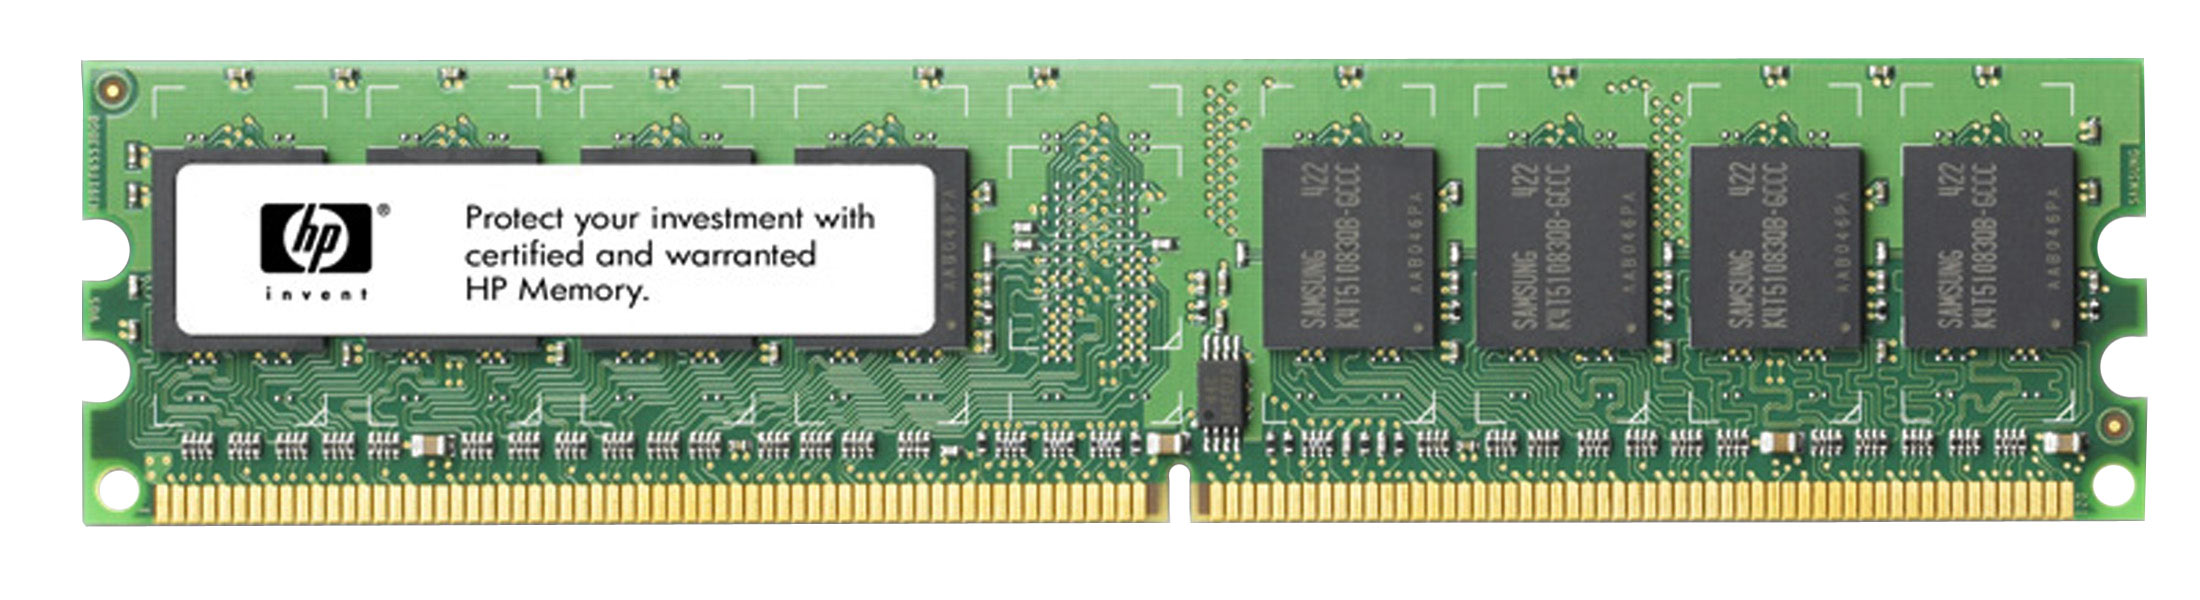 FH977AA HP 4GB PC2-6400 DDR2-800MHz non-ECC Unbuffered CL6 240-Pin DIMM Memory Module